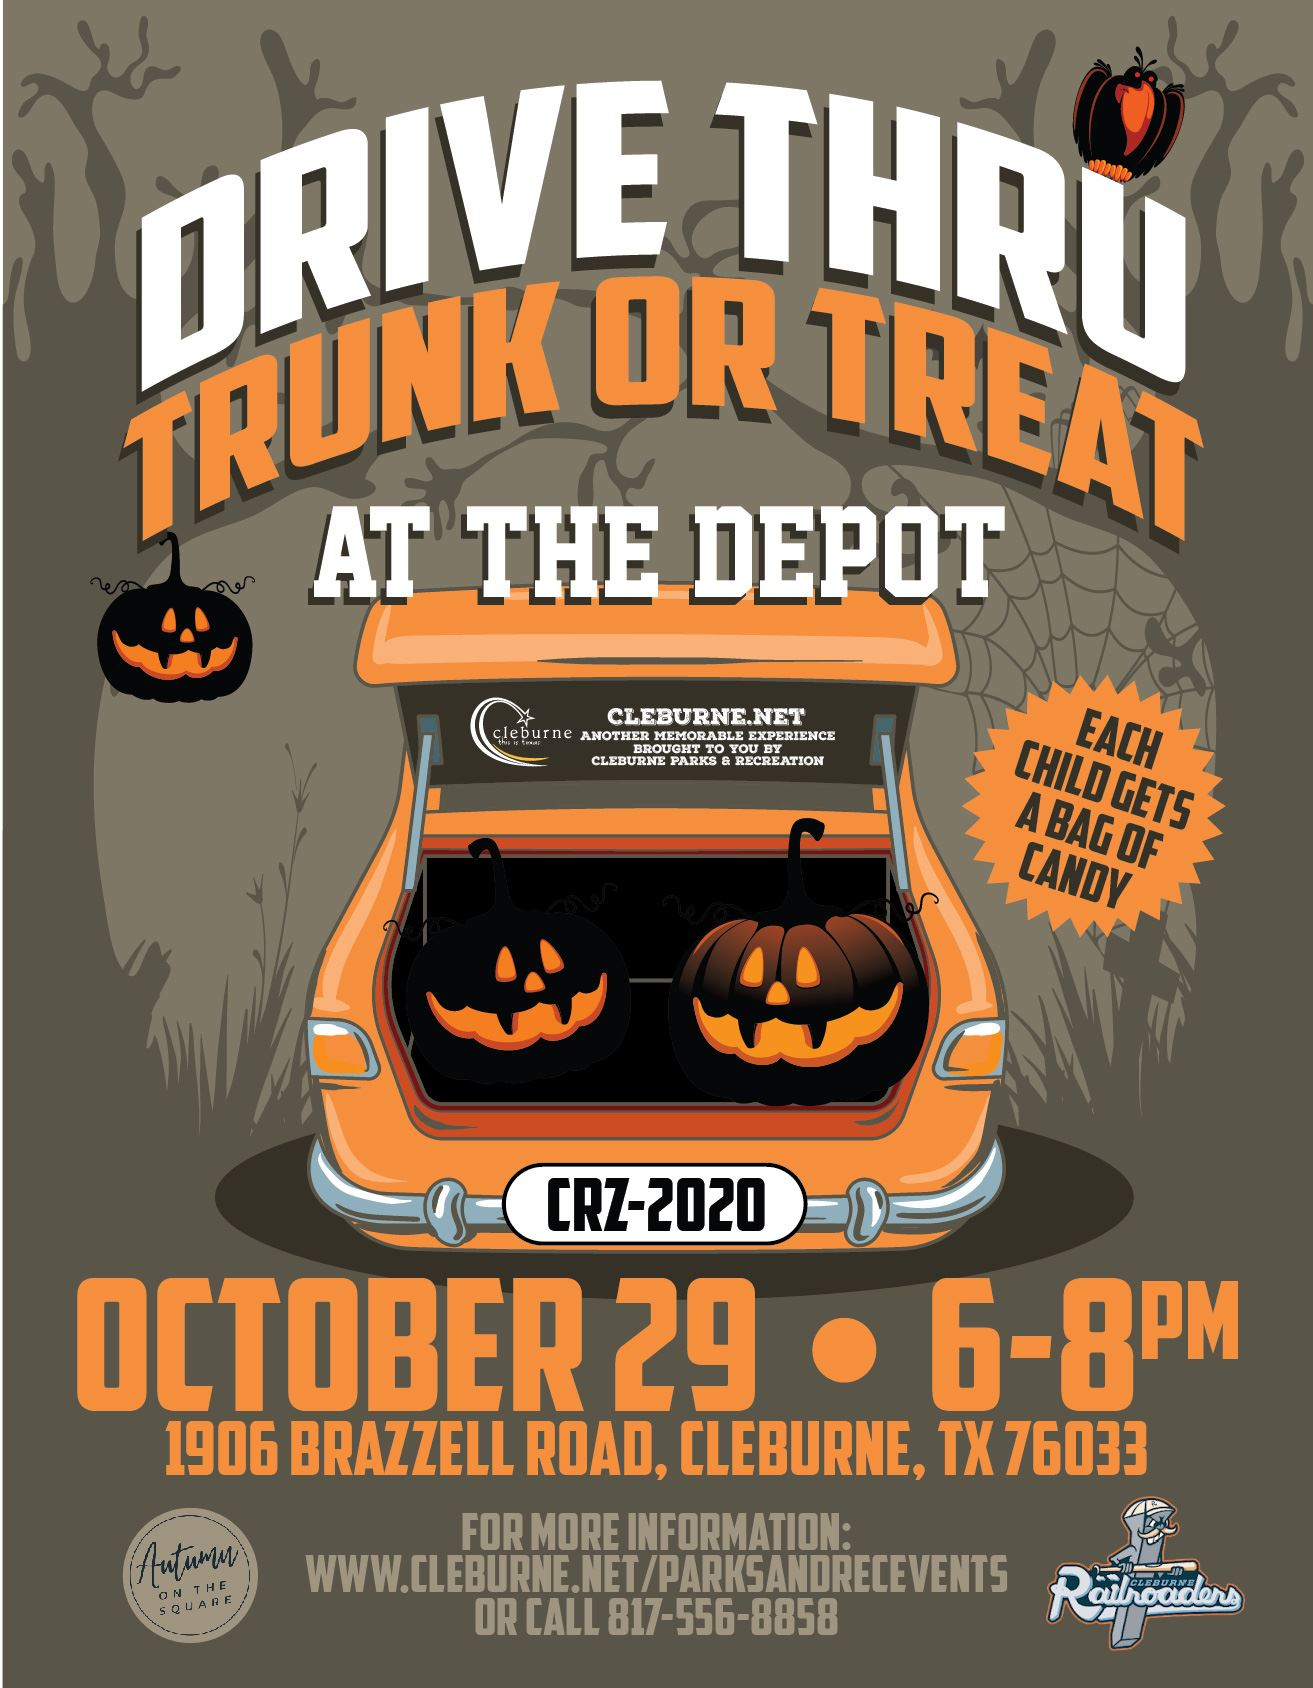 20-Trunk-Treat-Event Flyer